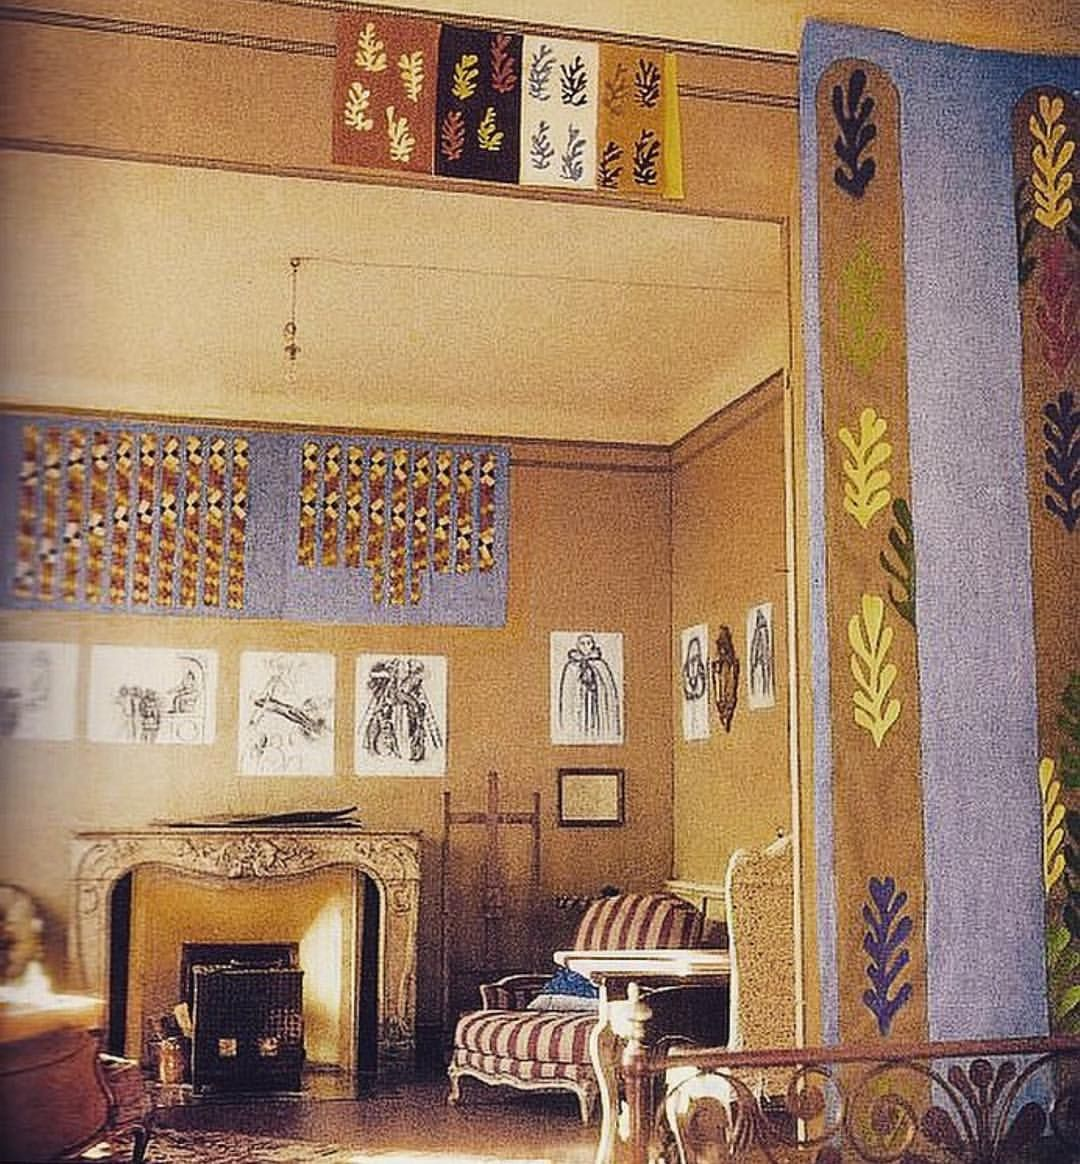 Henrimatisse Lived And Worked In The This Beautiful Apartment From 1943 To 1948 Villa Le Reve Matisse Tate Modern Painting